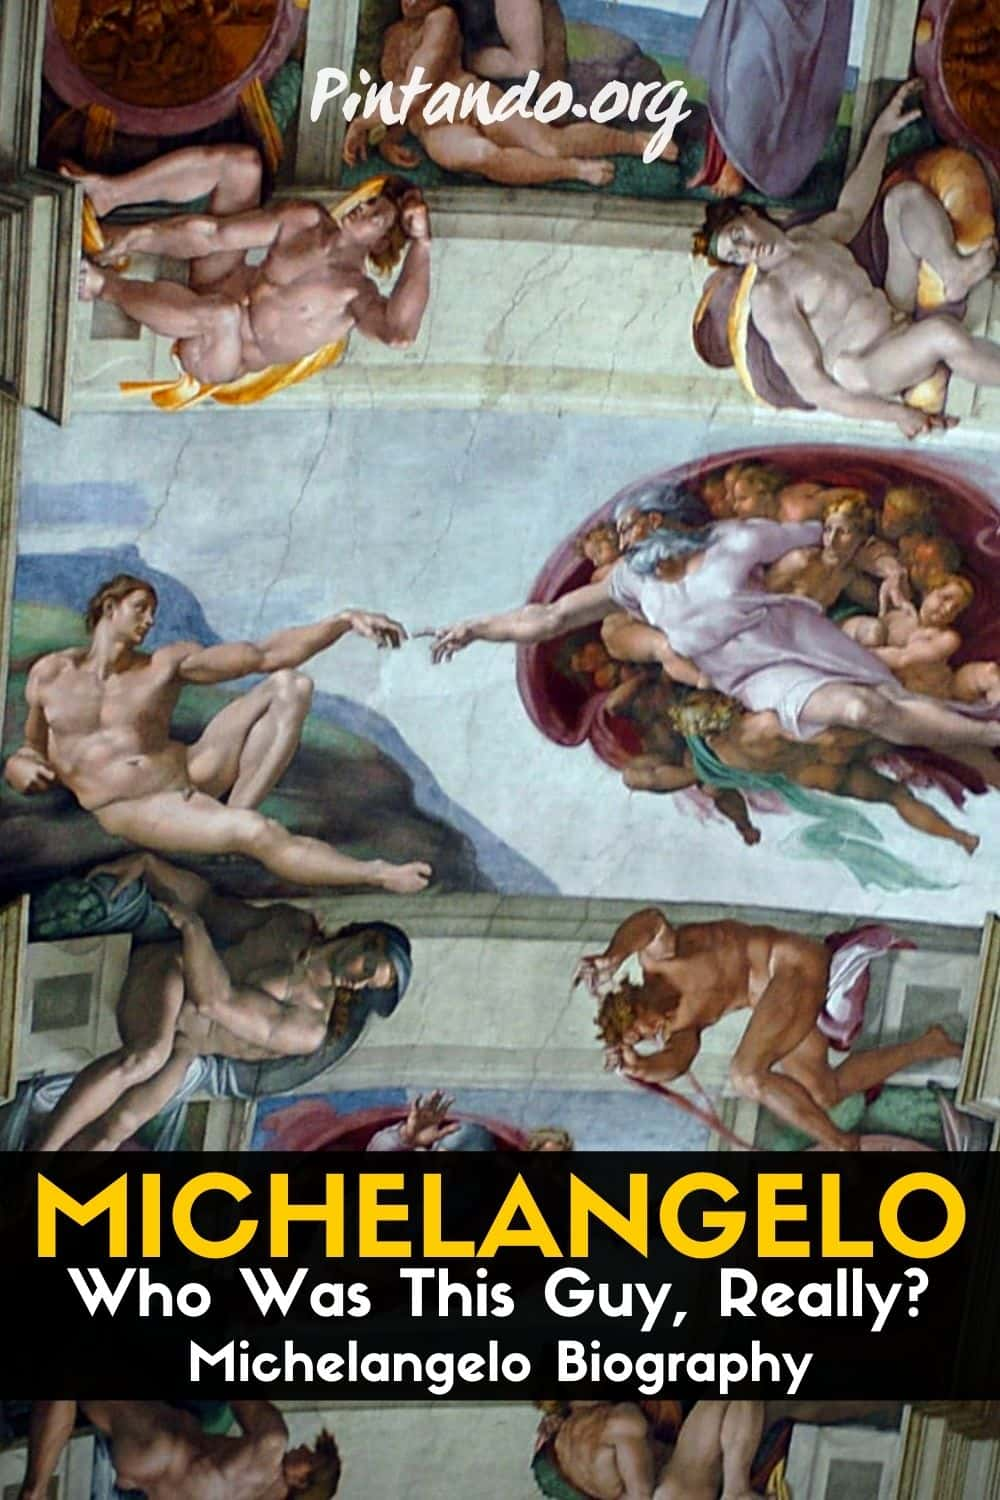 Michelangelo Biography_ Who Was This Guy, Really_ -min